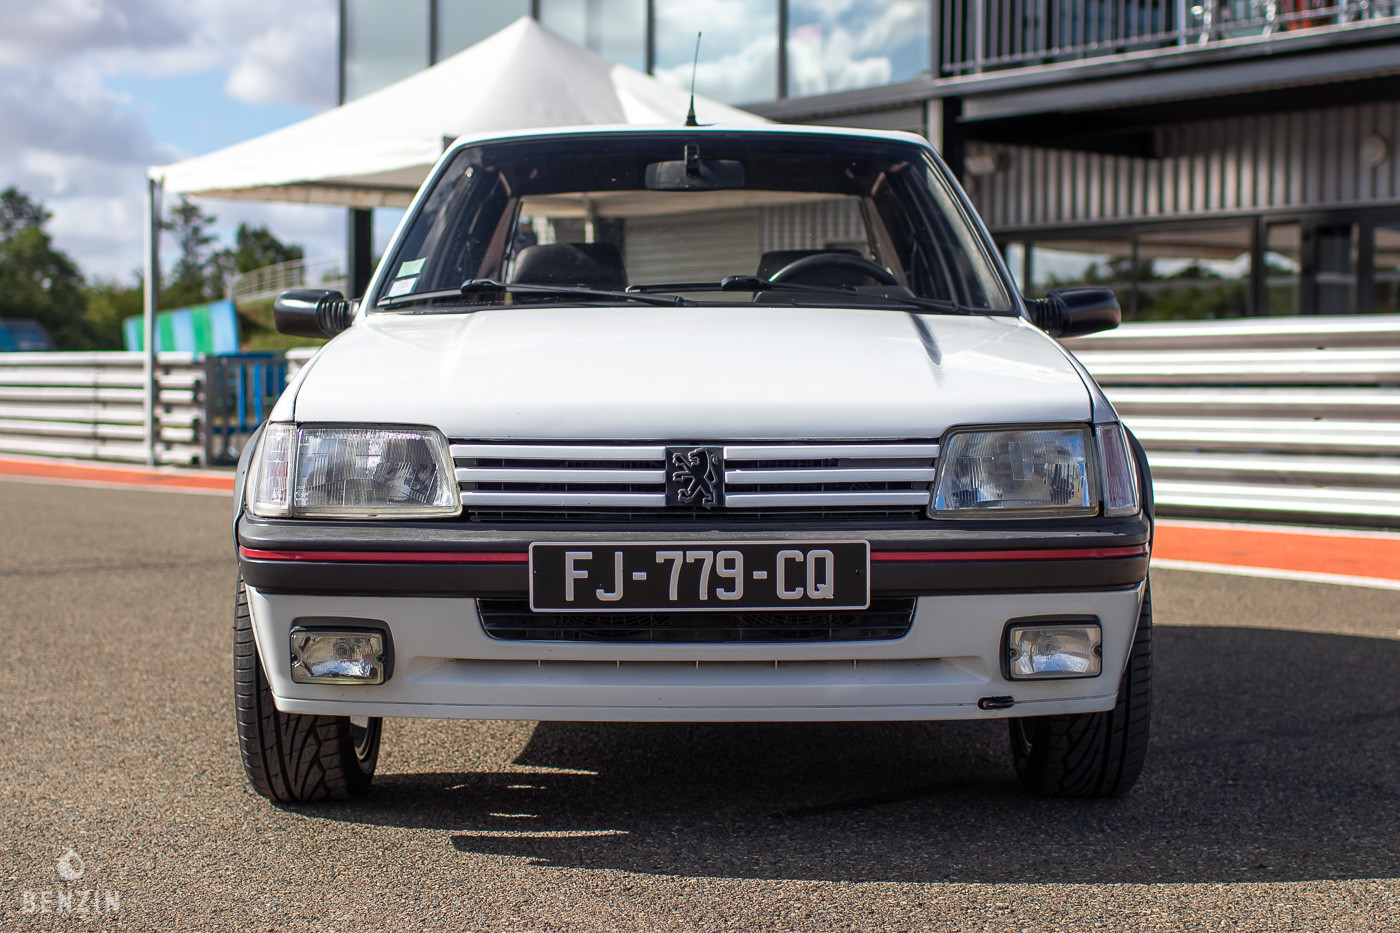 Peugeot 205 GTI 1.9 122 1994 annonce occasion enchere